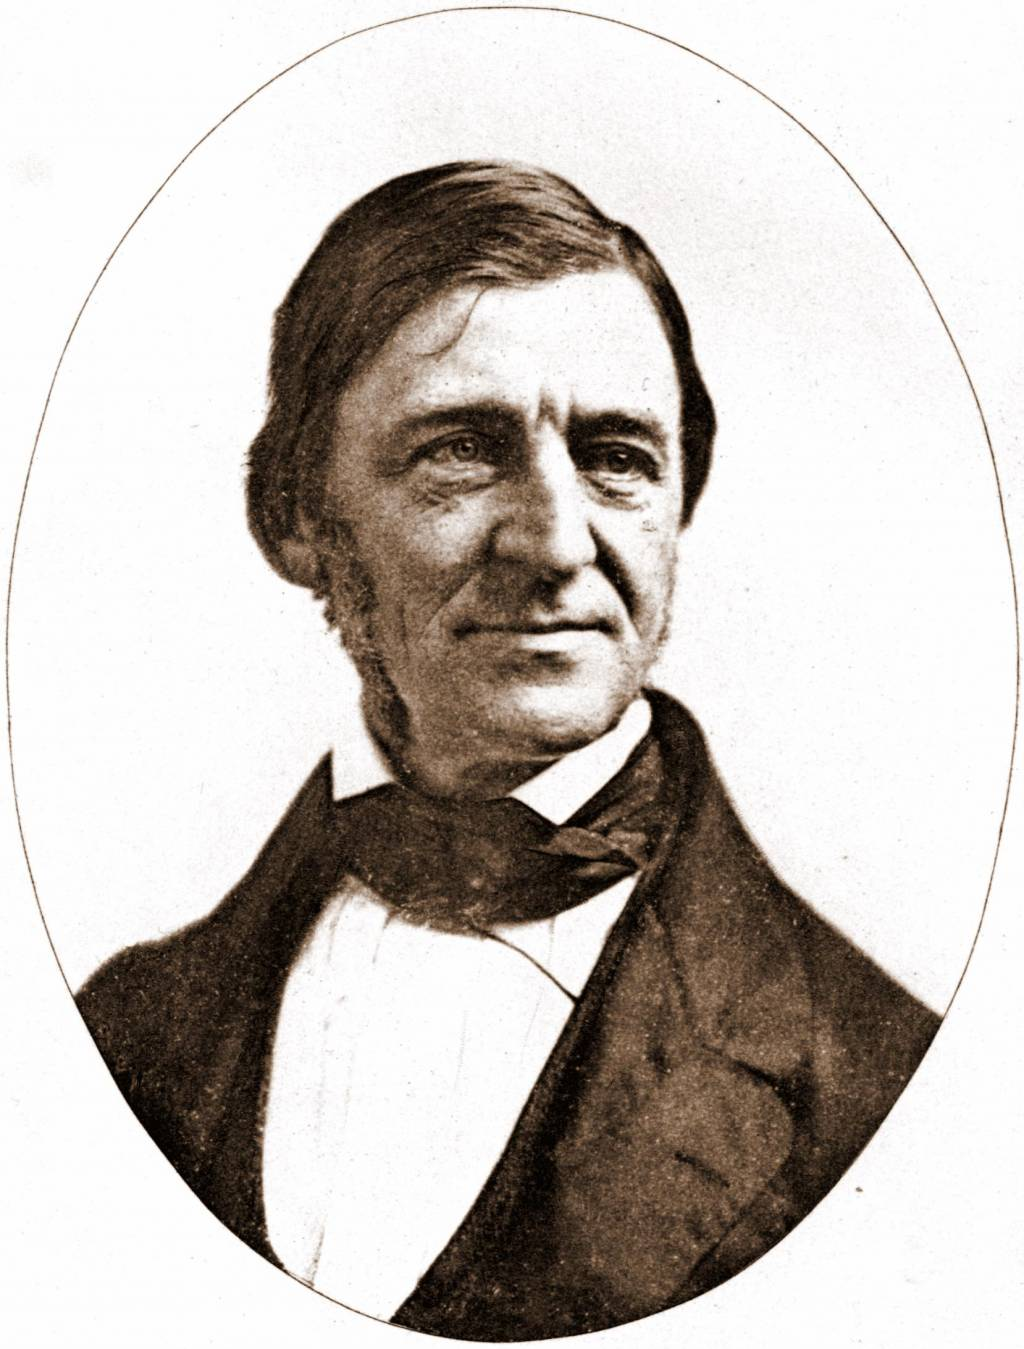 themes of individualism in ralph waldo emerson s self reliance english image of american philosopher poet ralph waldo emerson dated 1859 scanned